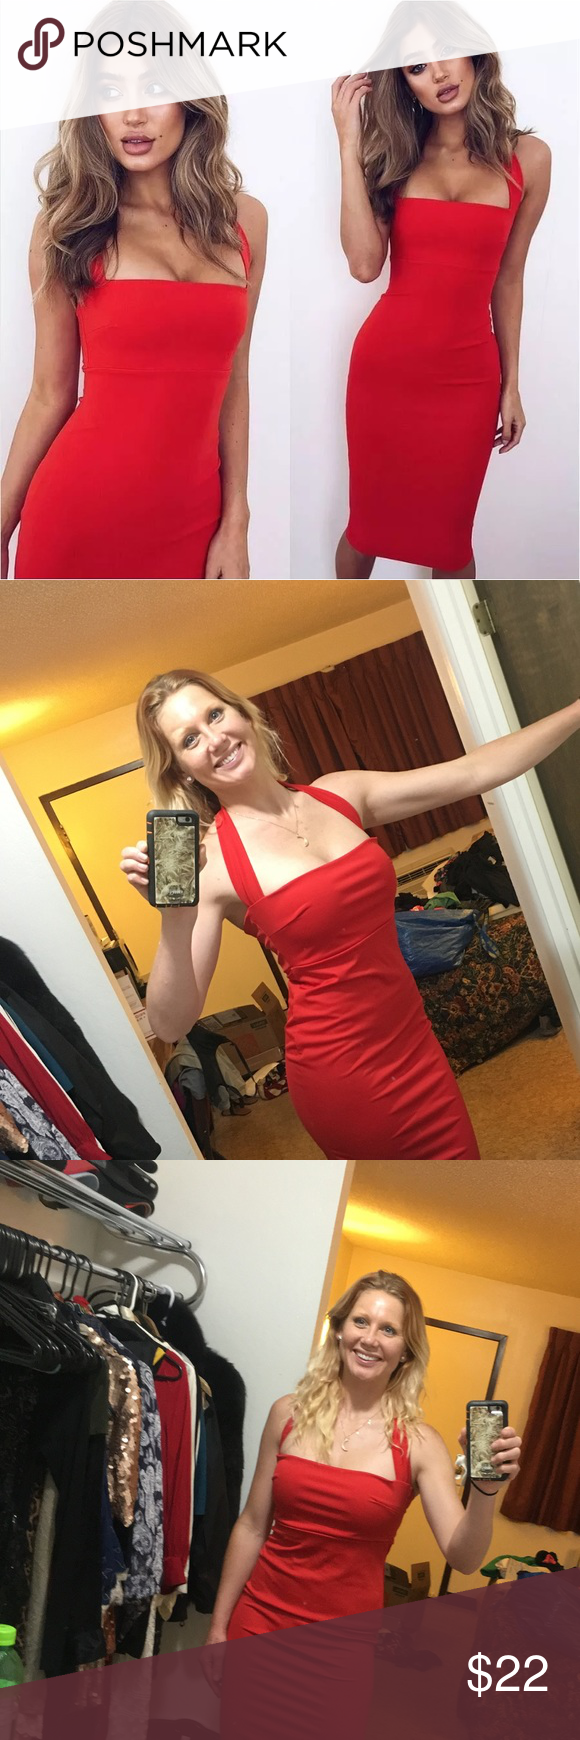 Halter neck red bodycon dress Too large for me. Never worn. should've ordered a Sz M. Showing it with Angels, strapless bra from VS. Dresses Strapless